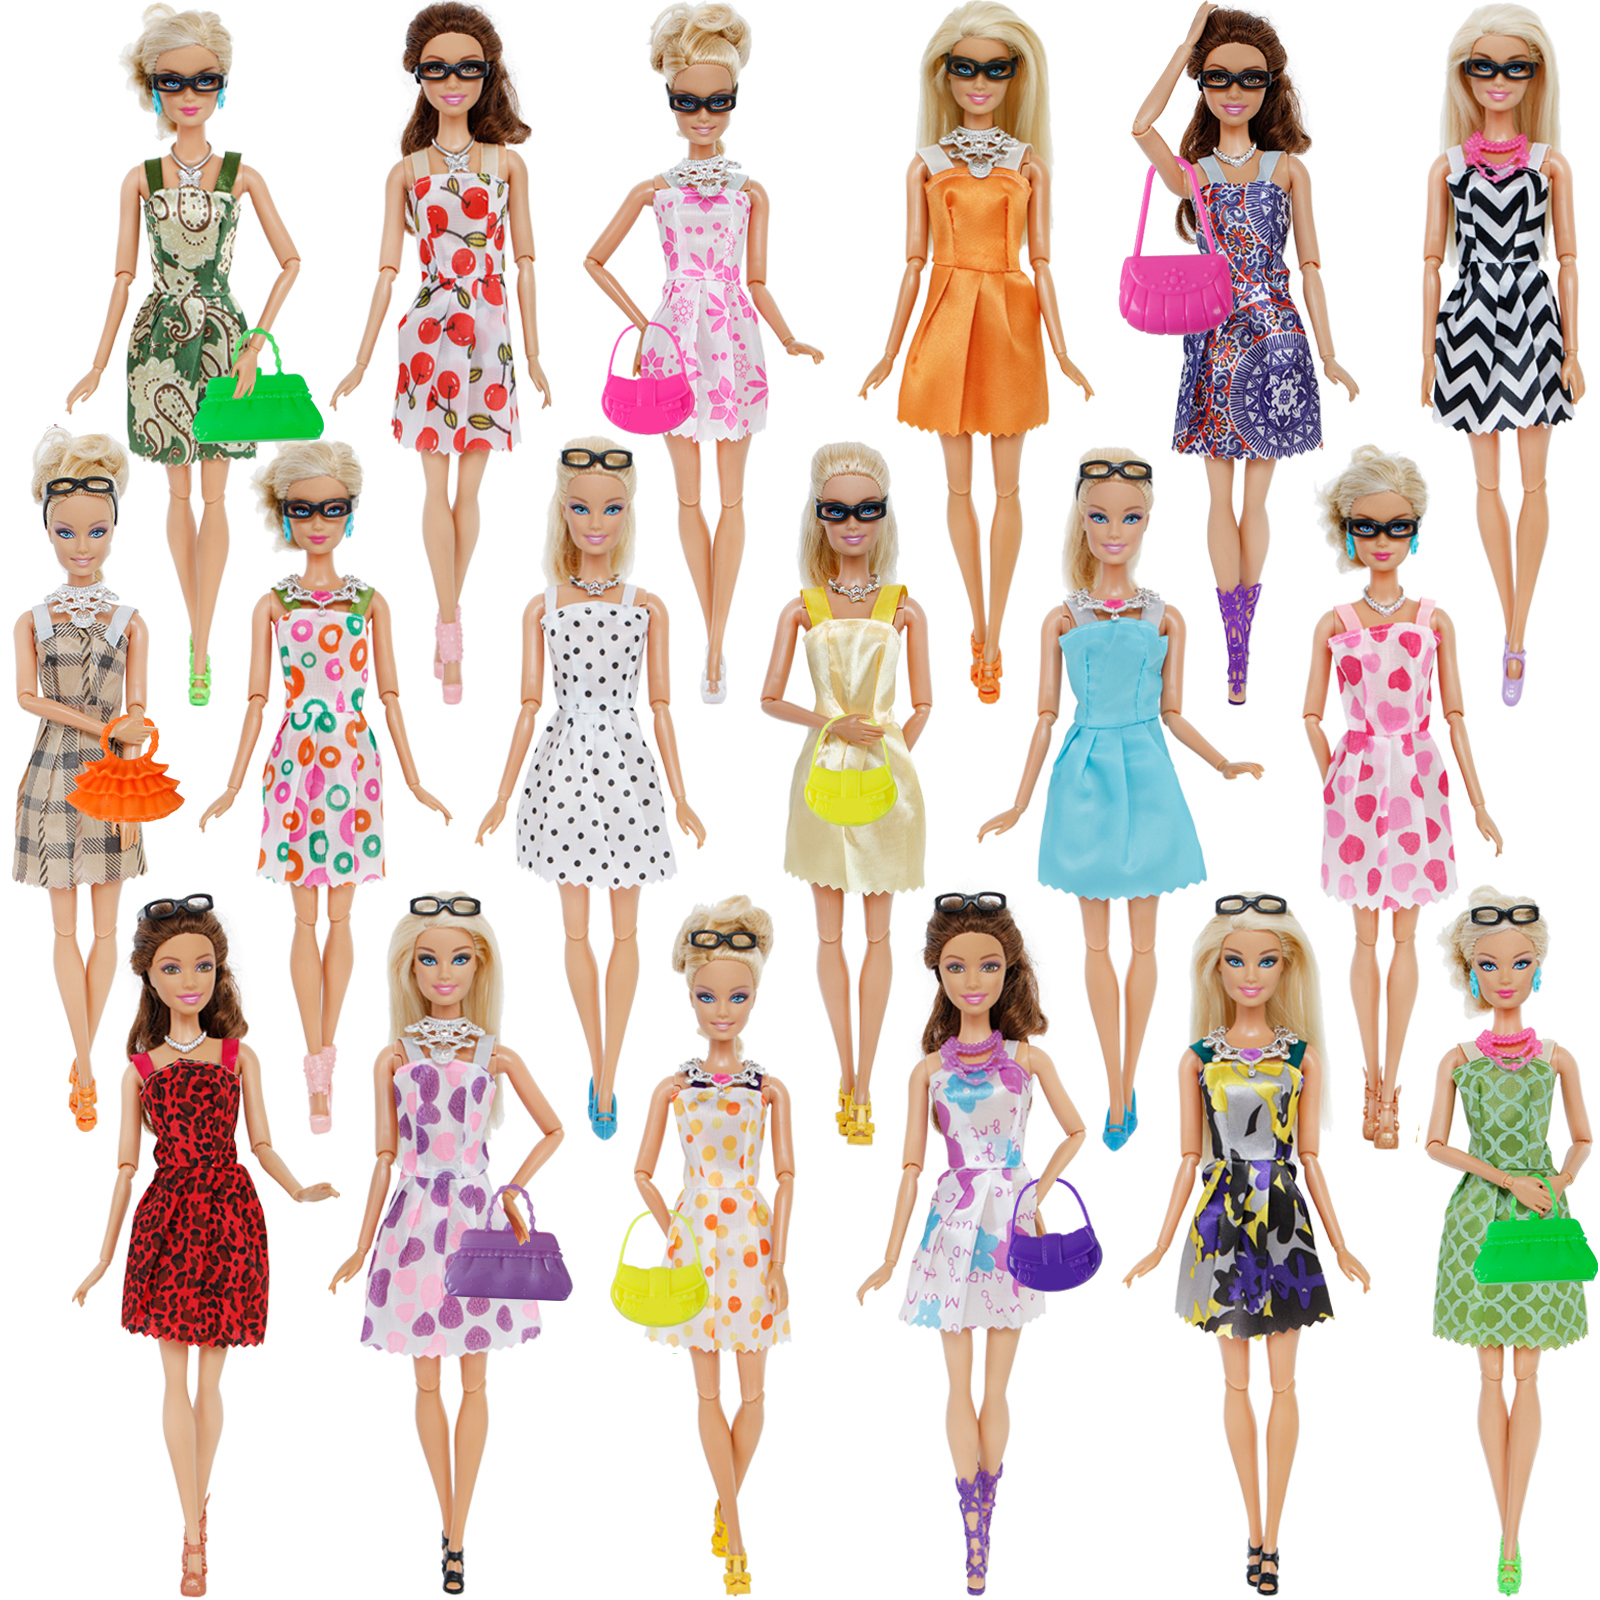 Set Doll Accessories Clothes 32 Shoes And Dress Item Barbie Glasses Fashion